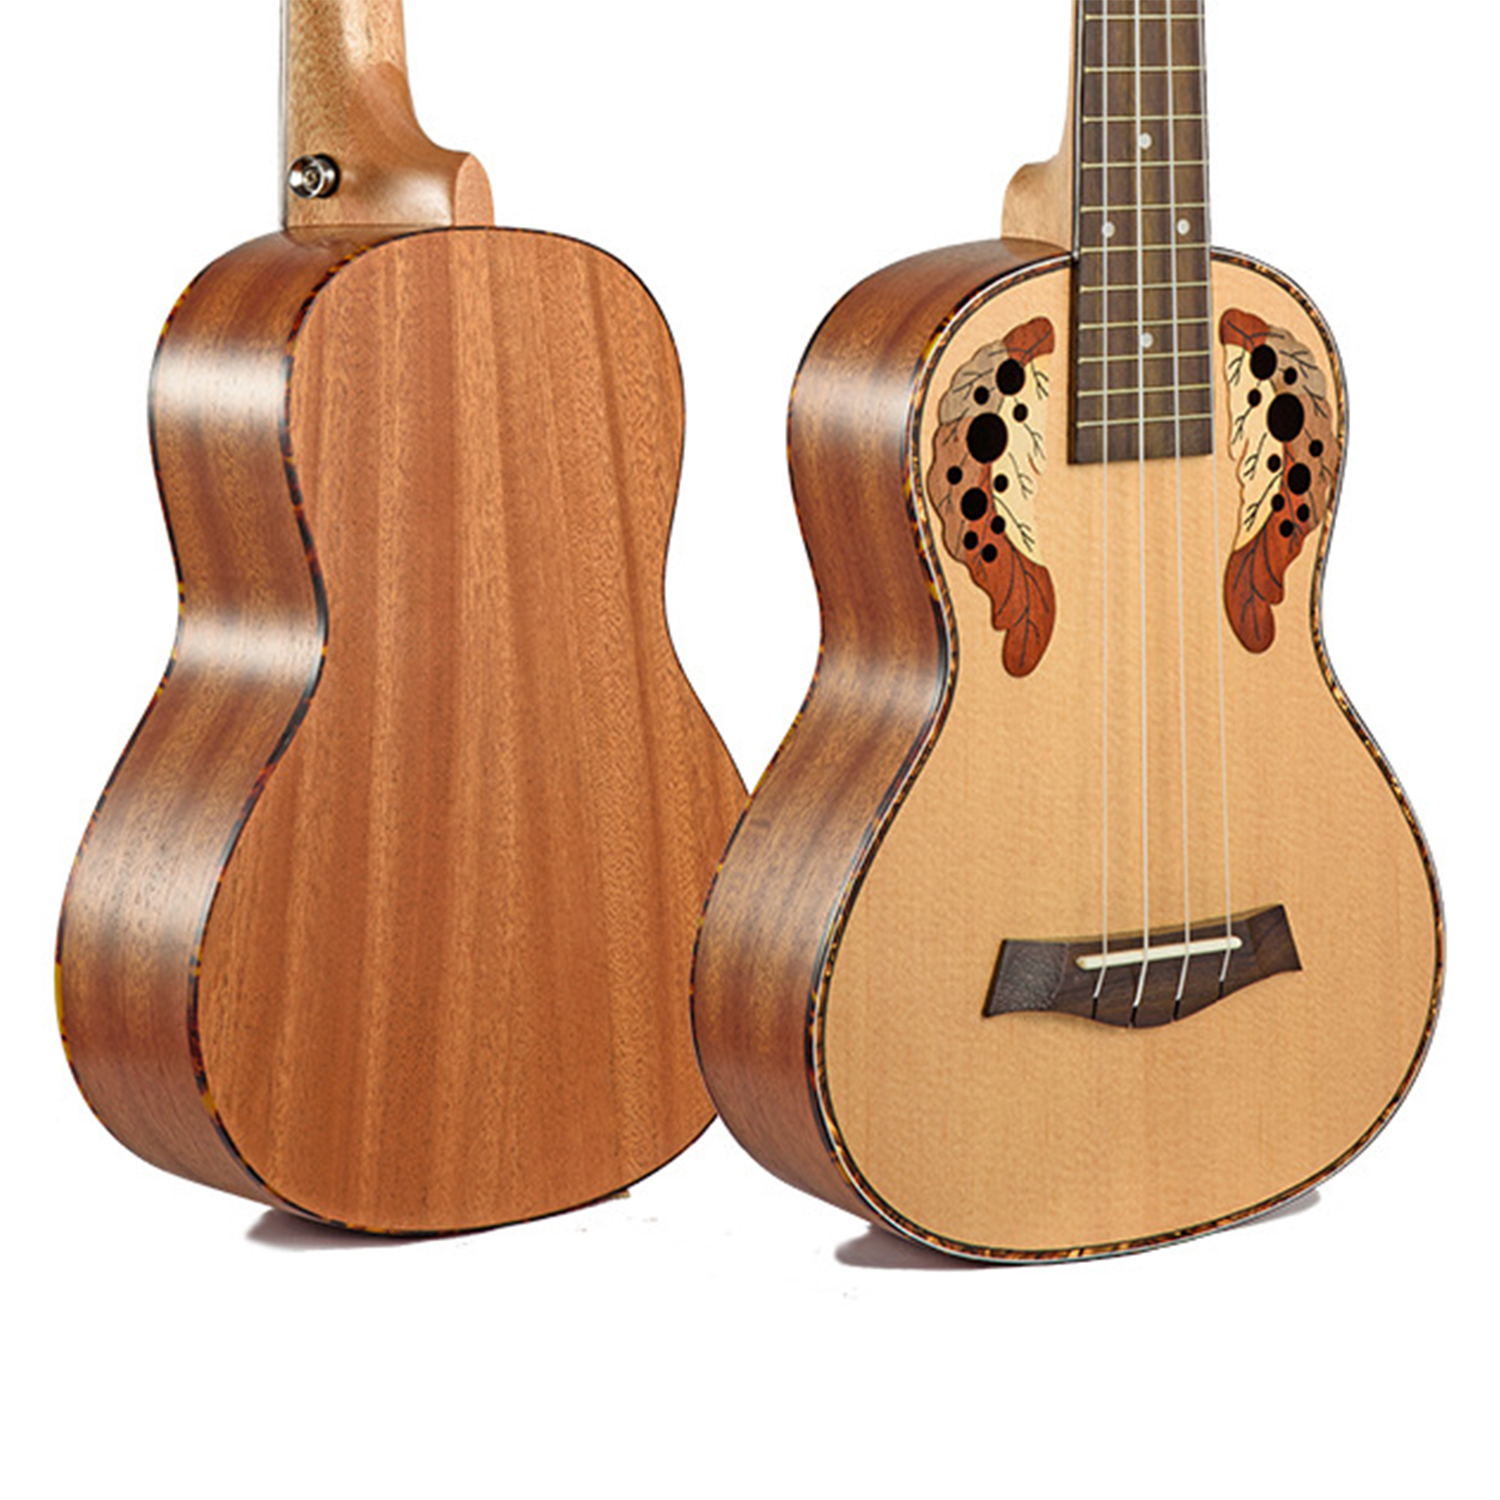 "Dean Guitars Ukulele Travel Uke: 23"" Concert Spruce Ovation Grape Hole 4 Strings Ukulele"